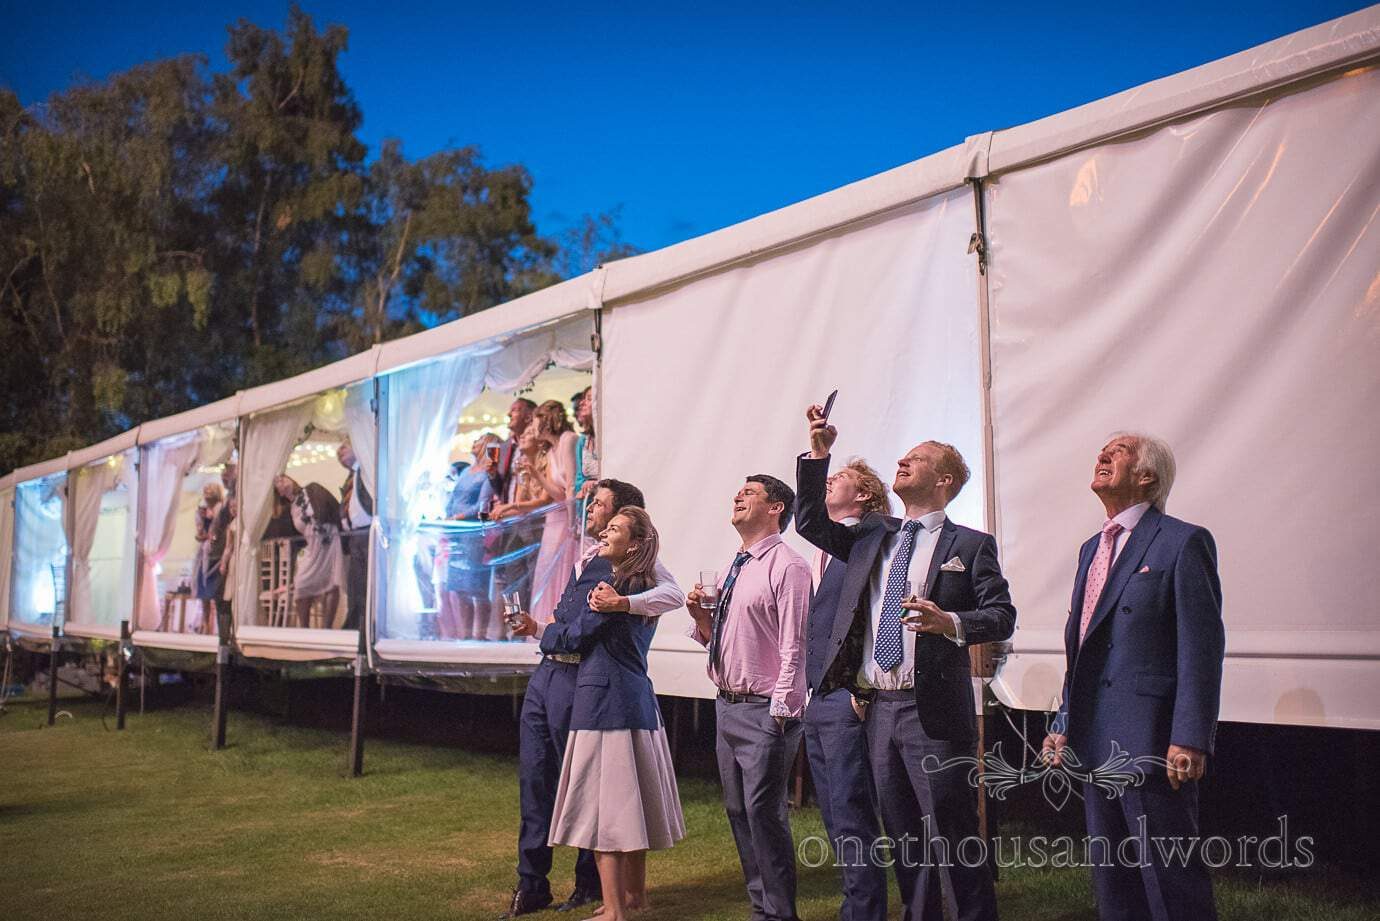 Wedding guests watch wedding fireworks in the night sky